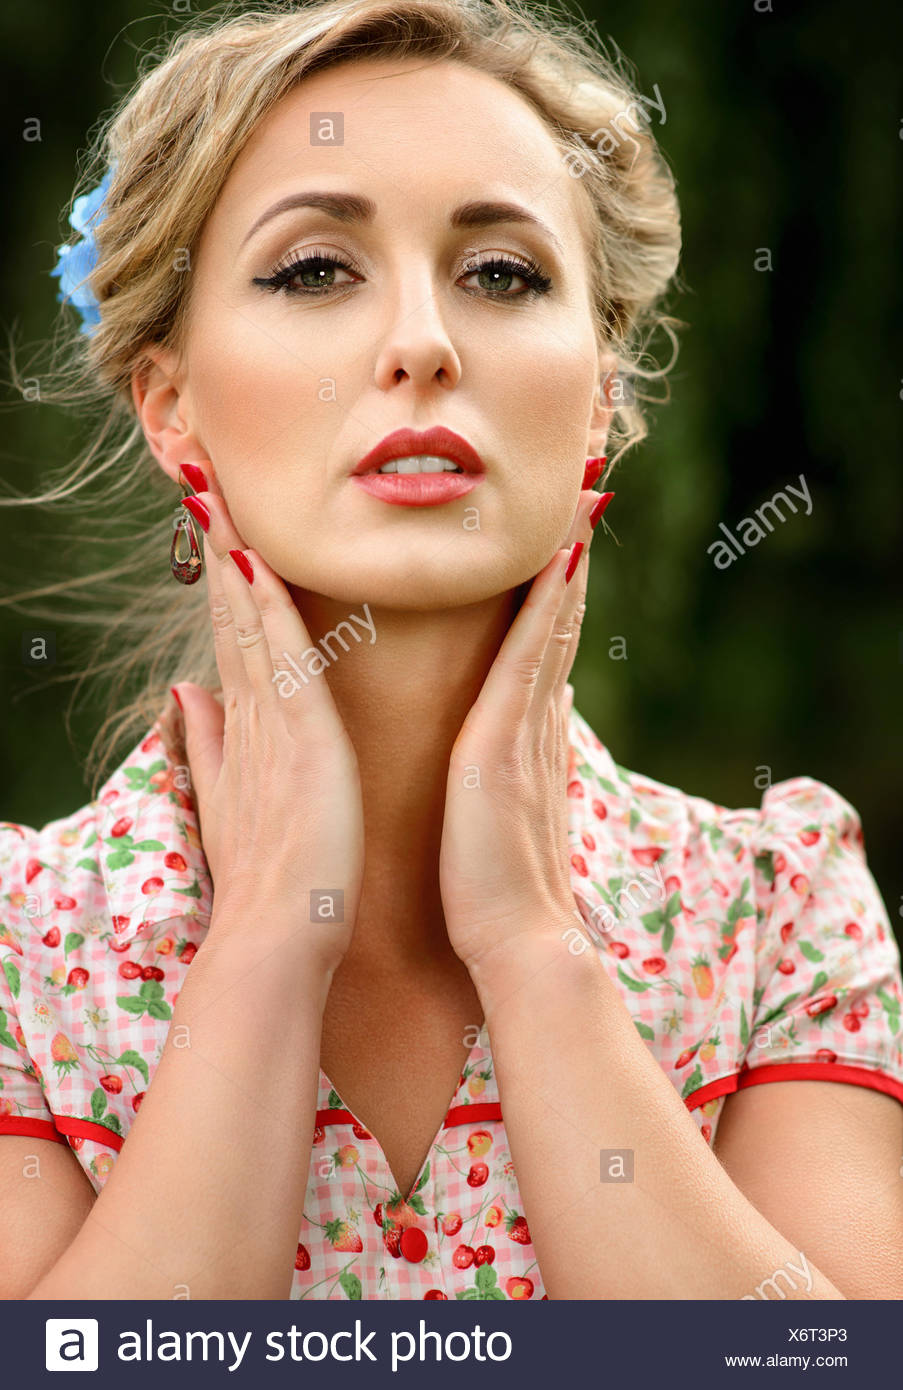 Portrait of a mid adult woman holding her hands to her face - Stock Image